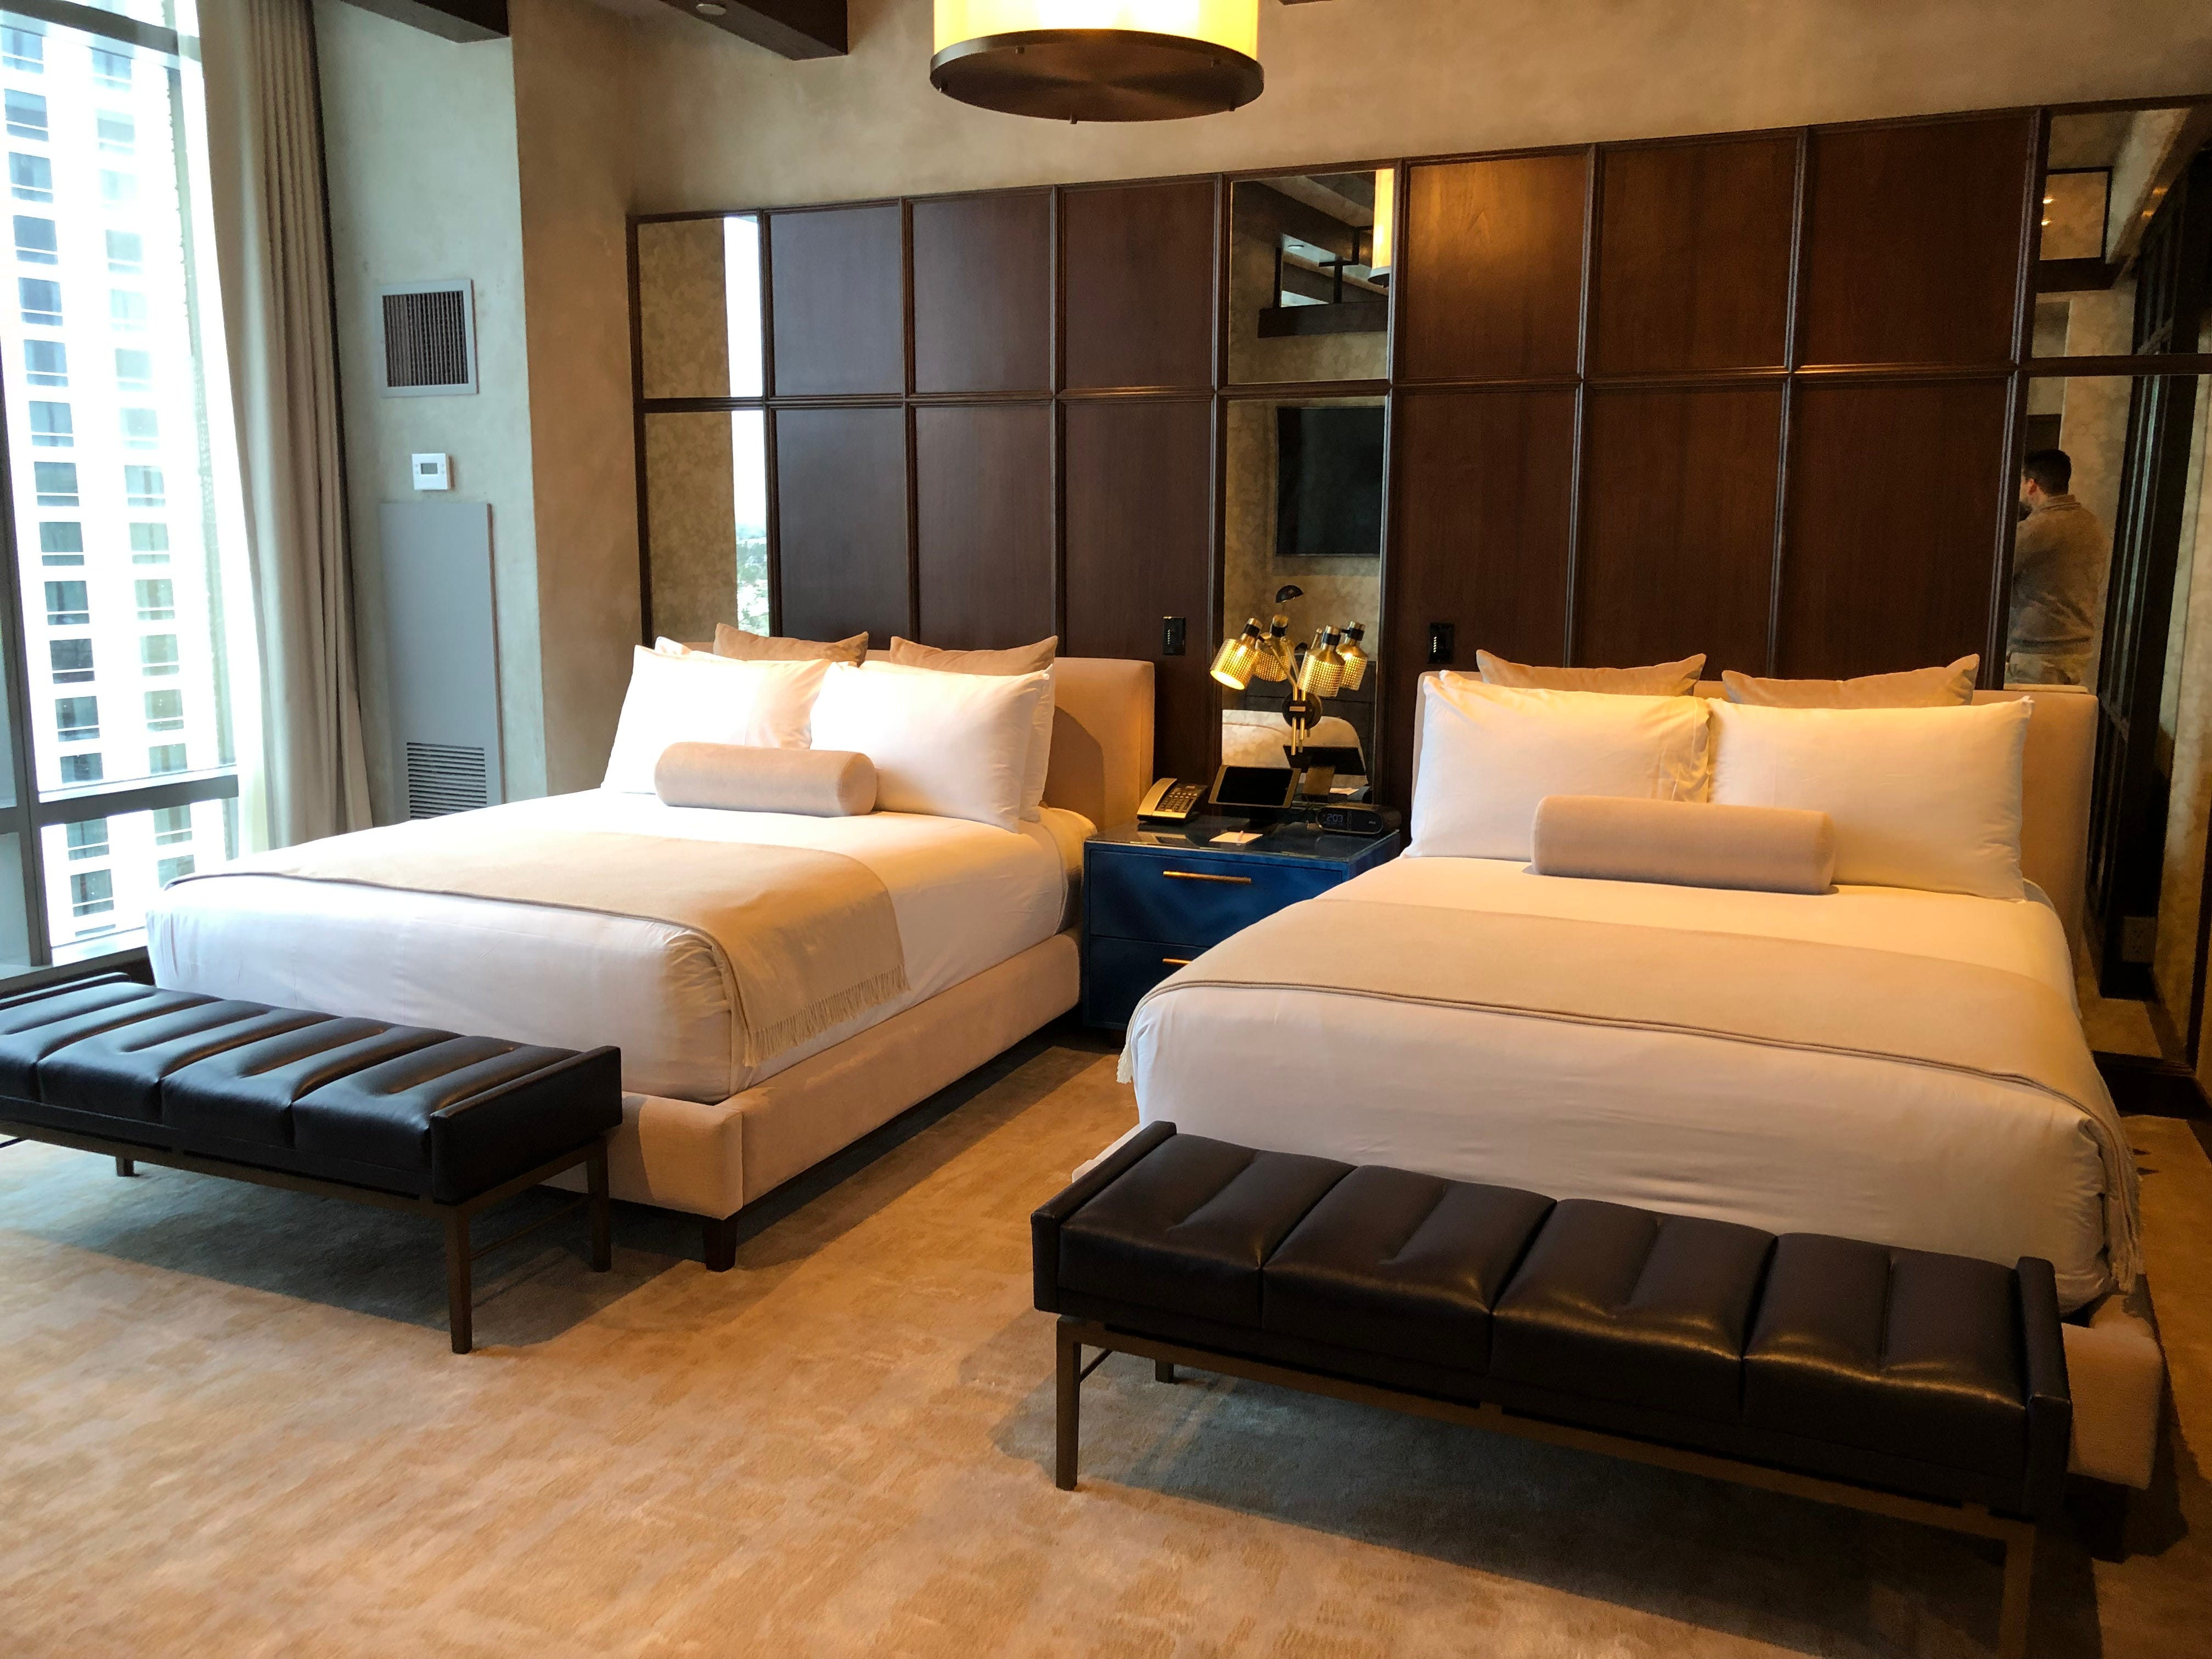 Bedroom in a suite at the Las Vegas Palms Casino Resort. The resort has several suites designed for groups.